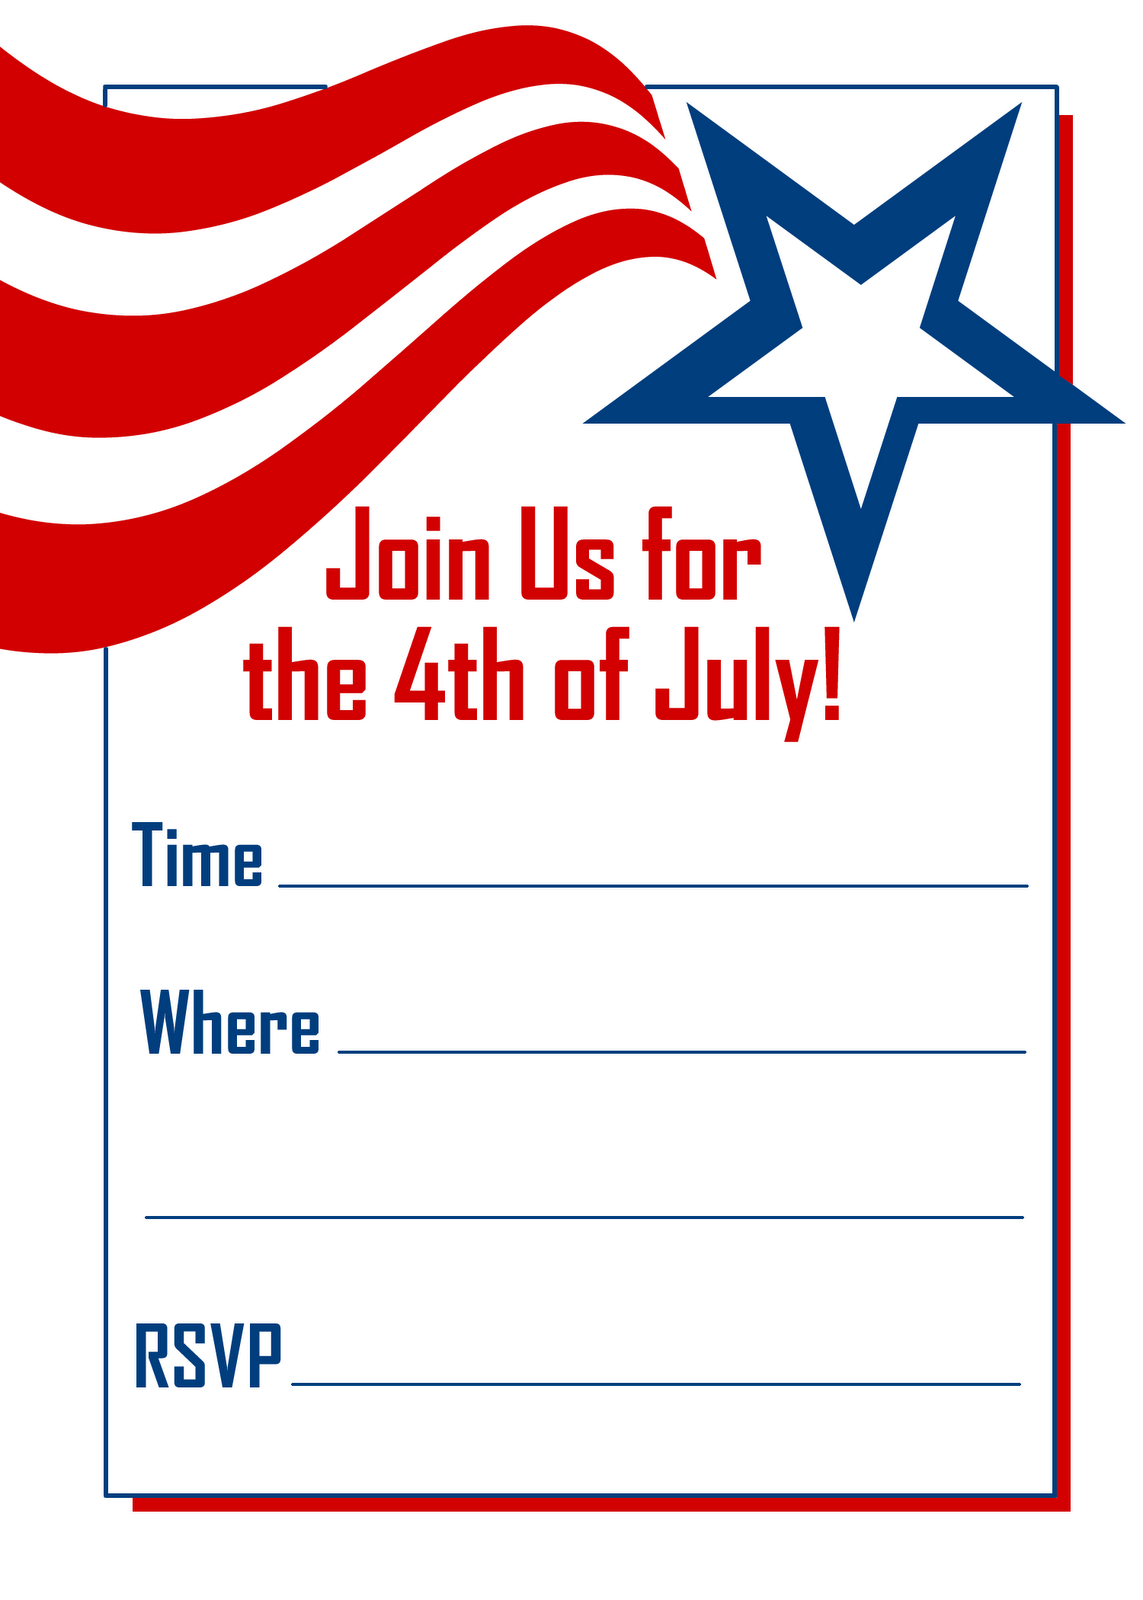 4th Of July Invitations Free Printable Patriotic Invitations Party Invite Template Free Printable Party Invitations